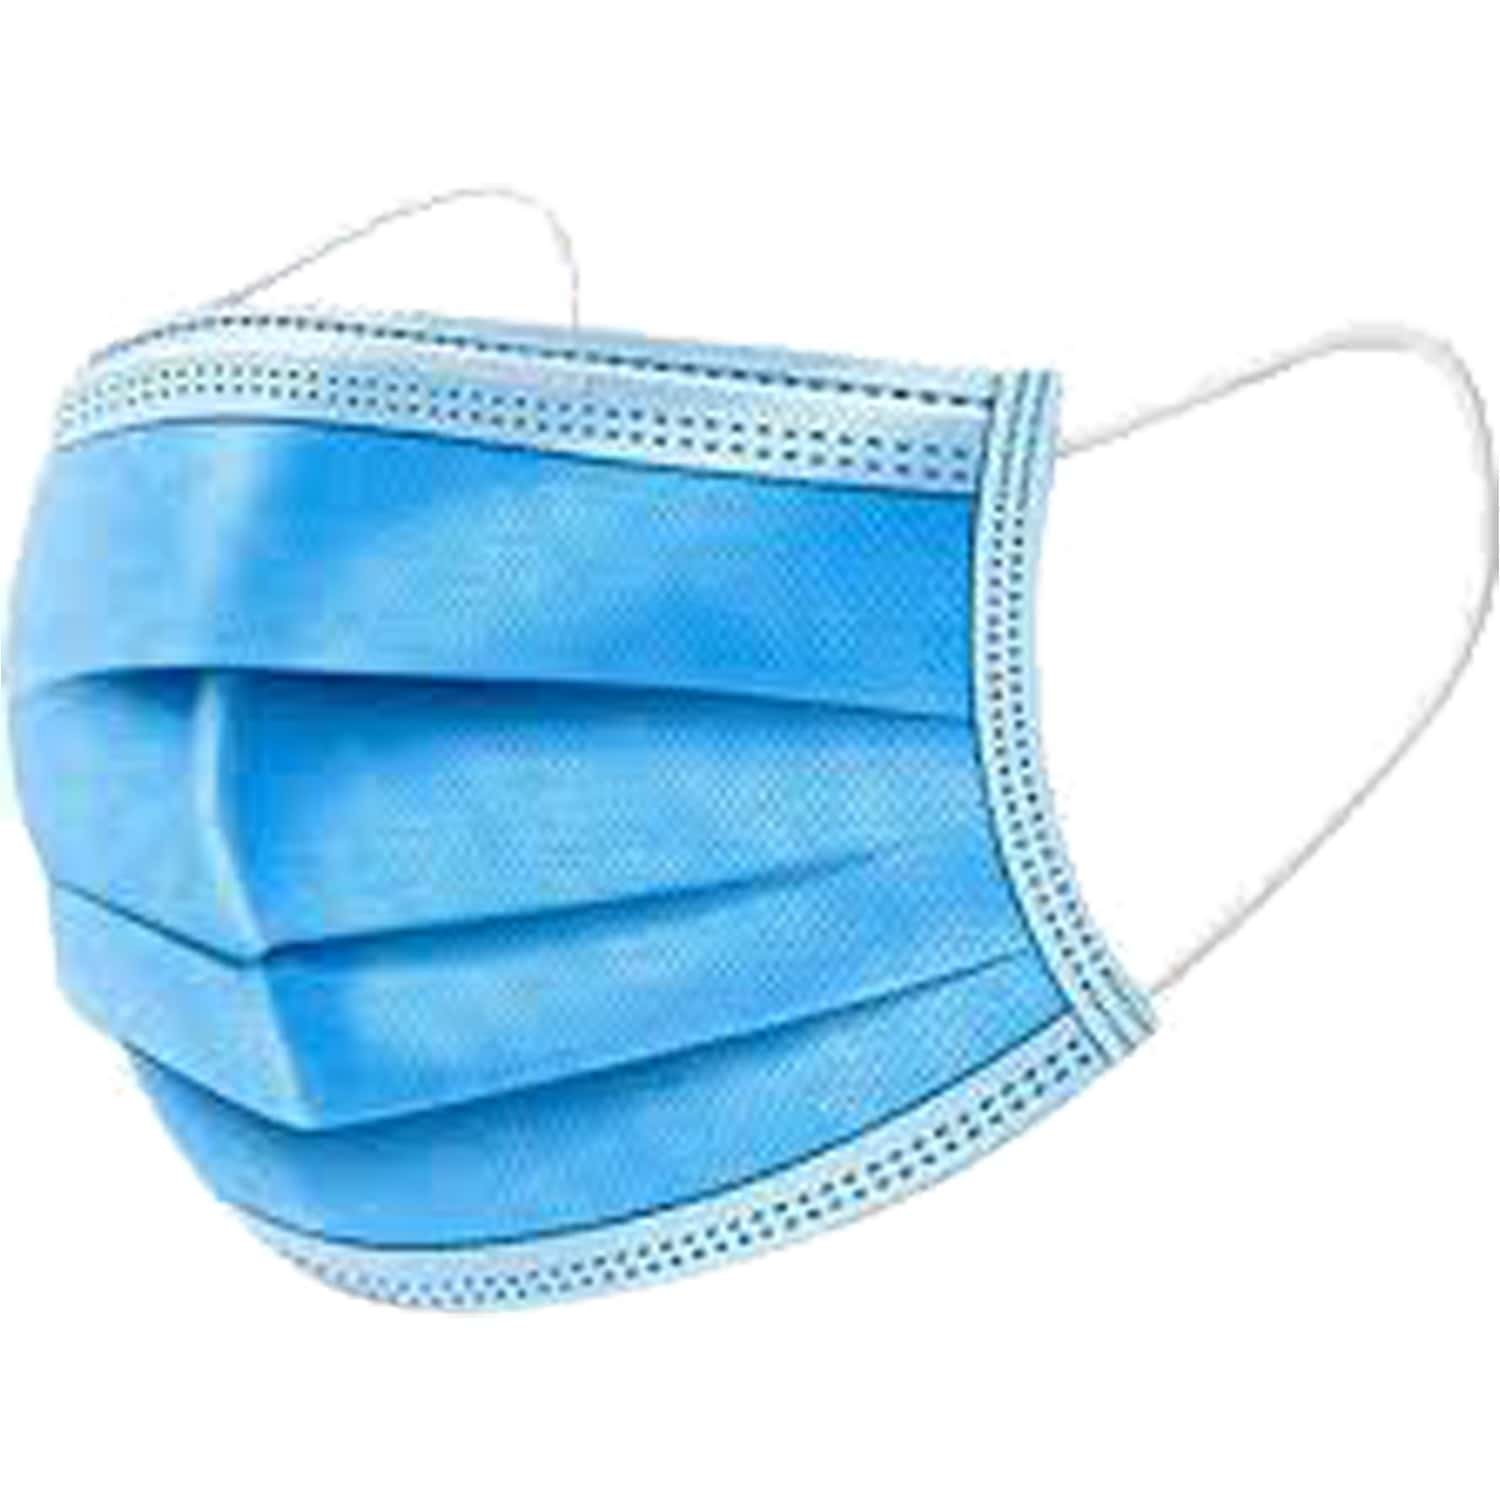 3ply High Quality Protective Mask Loop Type 1